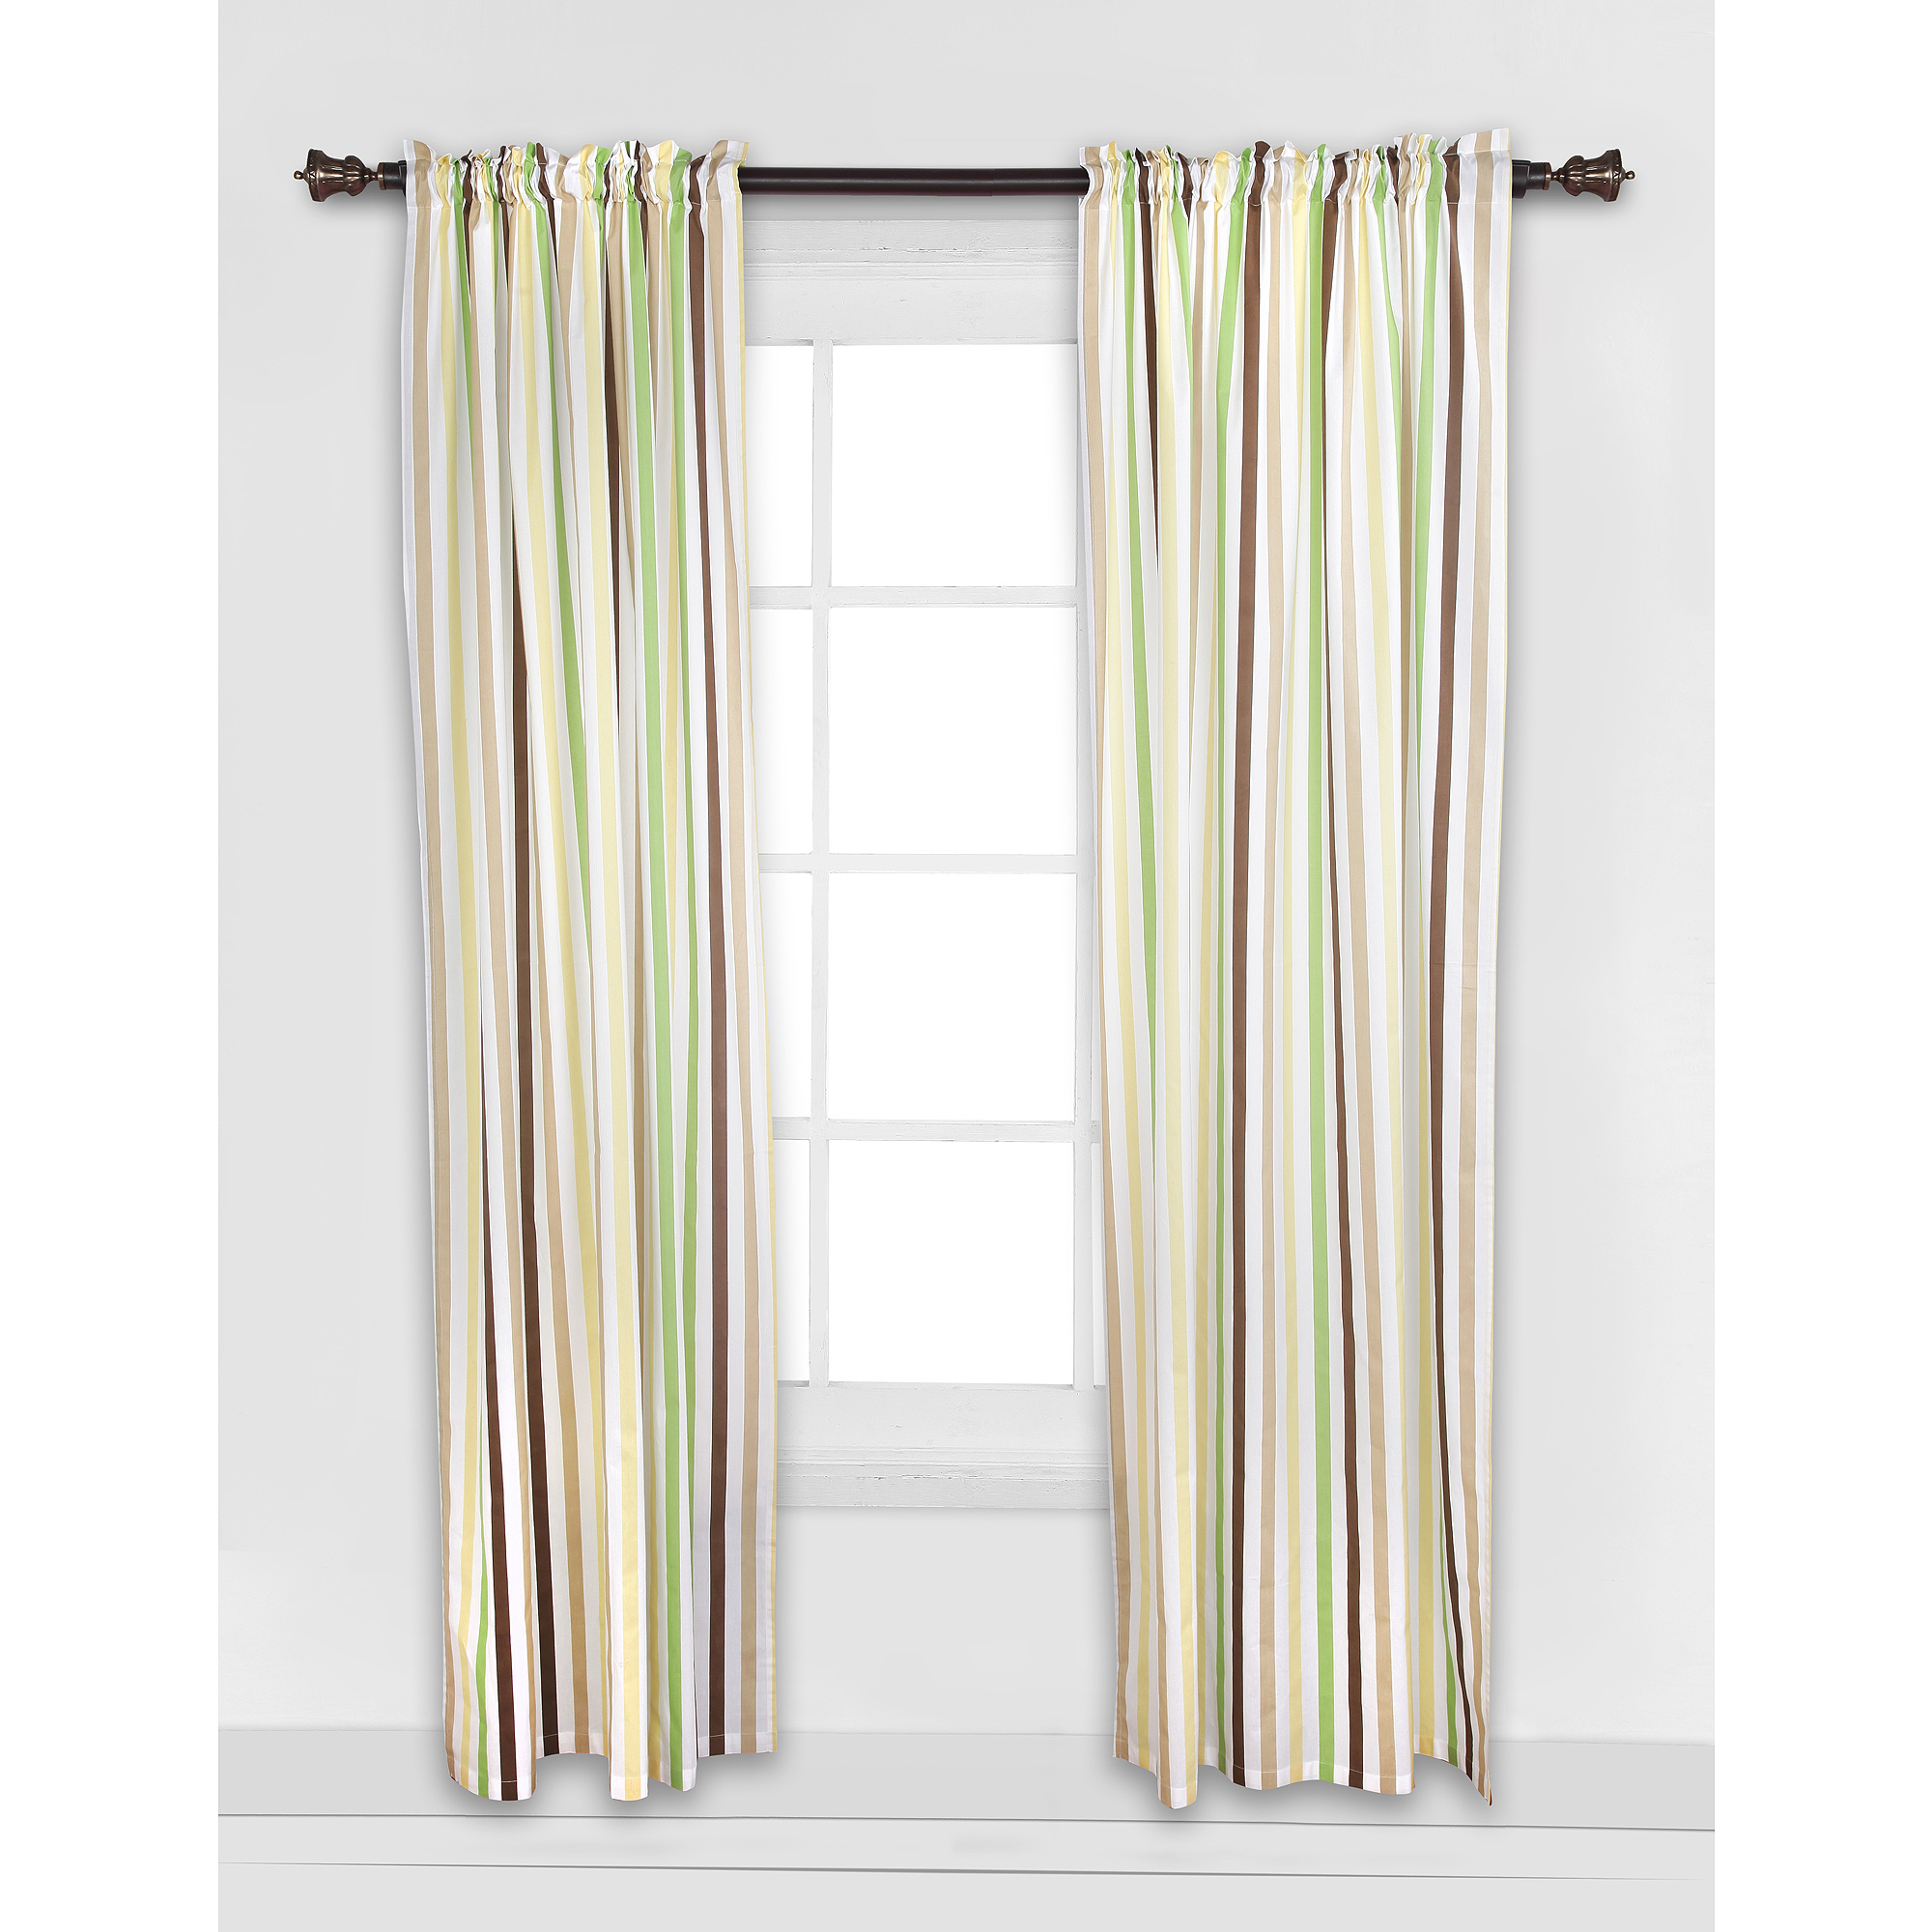 Bed Bath N More Ivory Micro Striped Semi Sheer Window Curtain Pieces – Tiers, Valance And Swag Options With Regard To Latest White Micro Striped Semi Sheer Window Curtain Pieces (View 11 of 20)